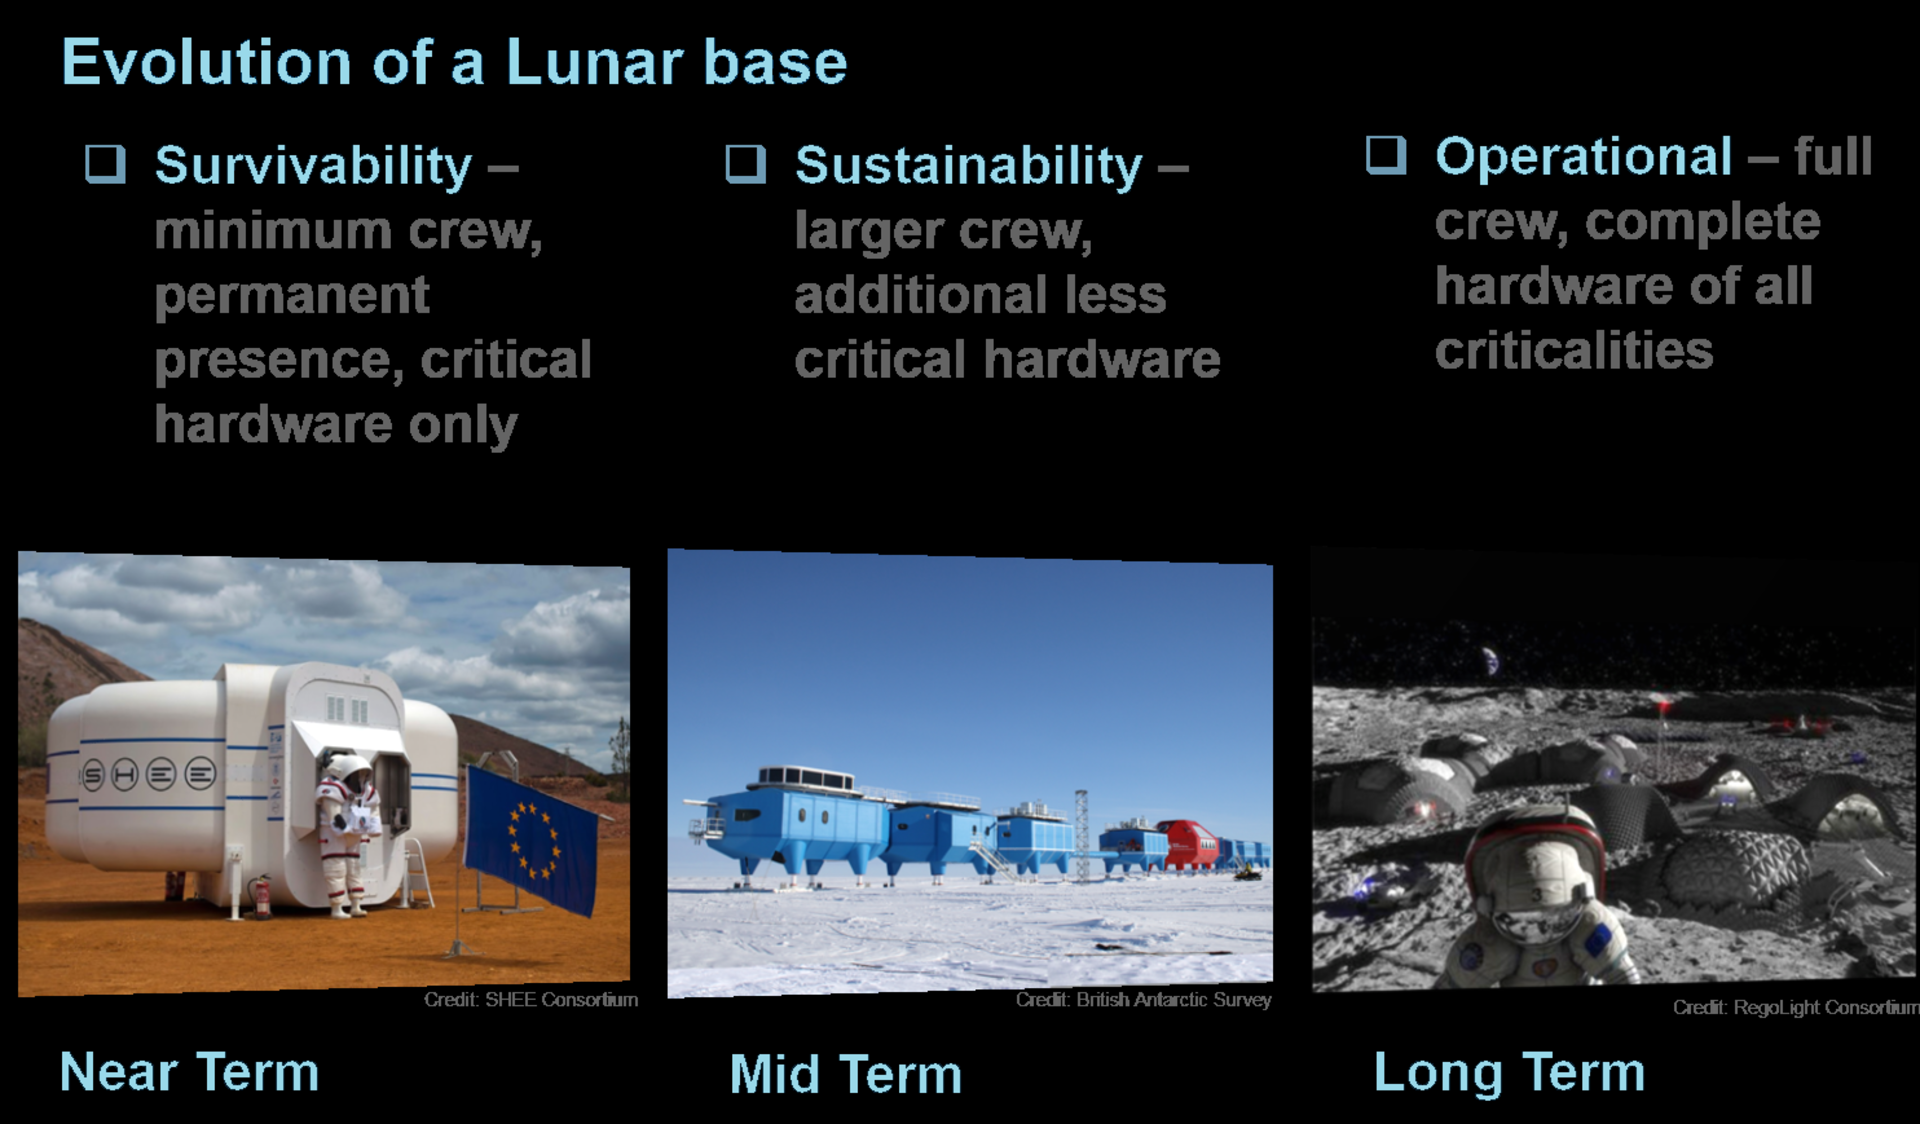 Evolution of a lunar base